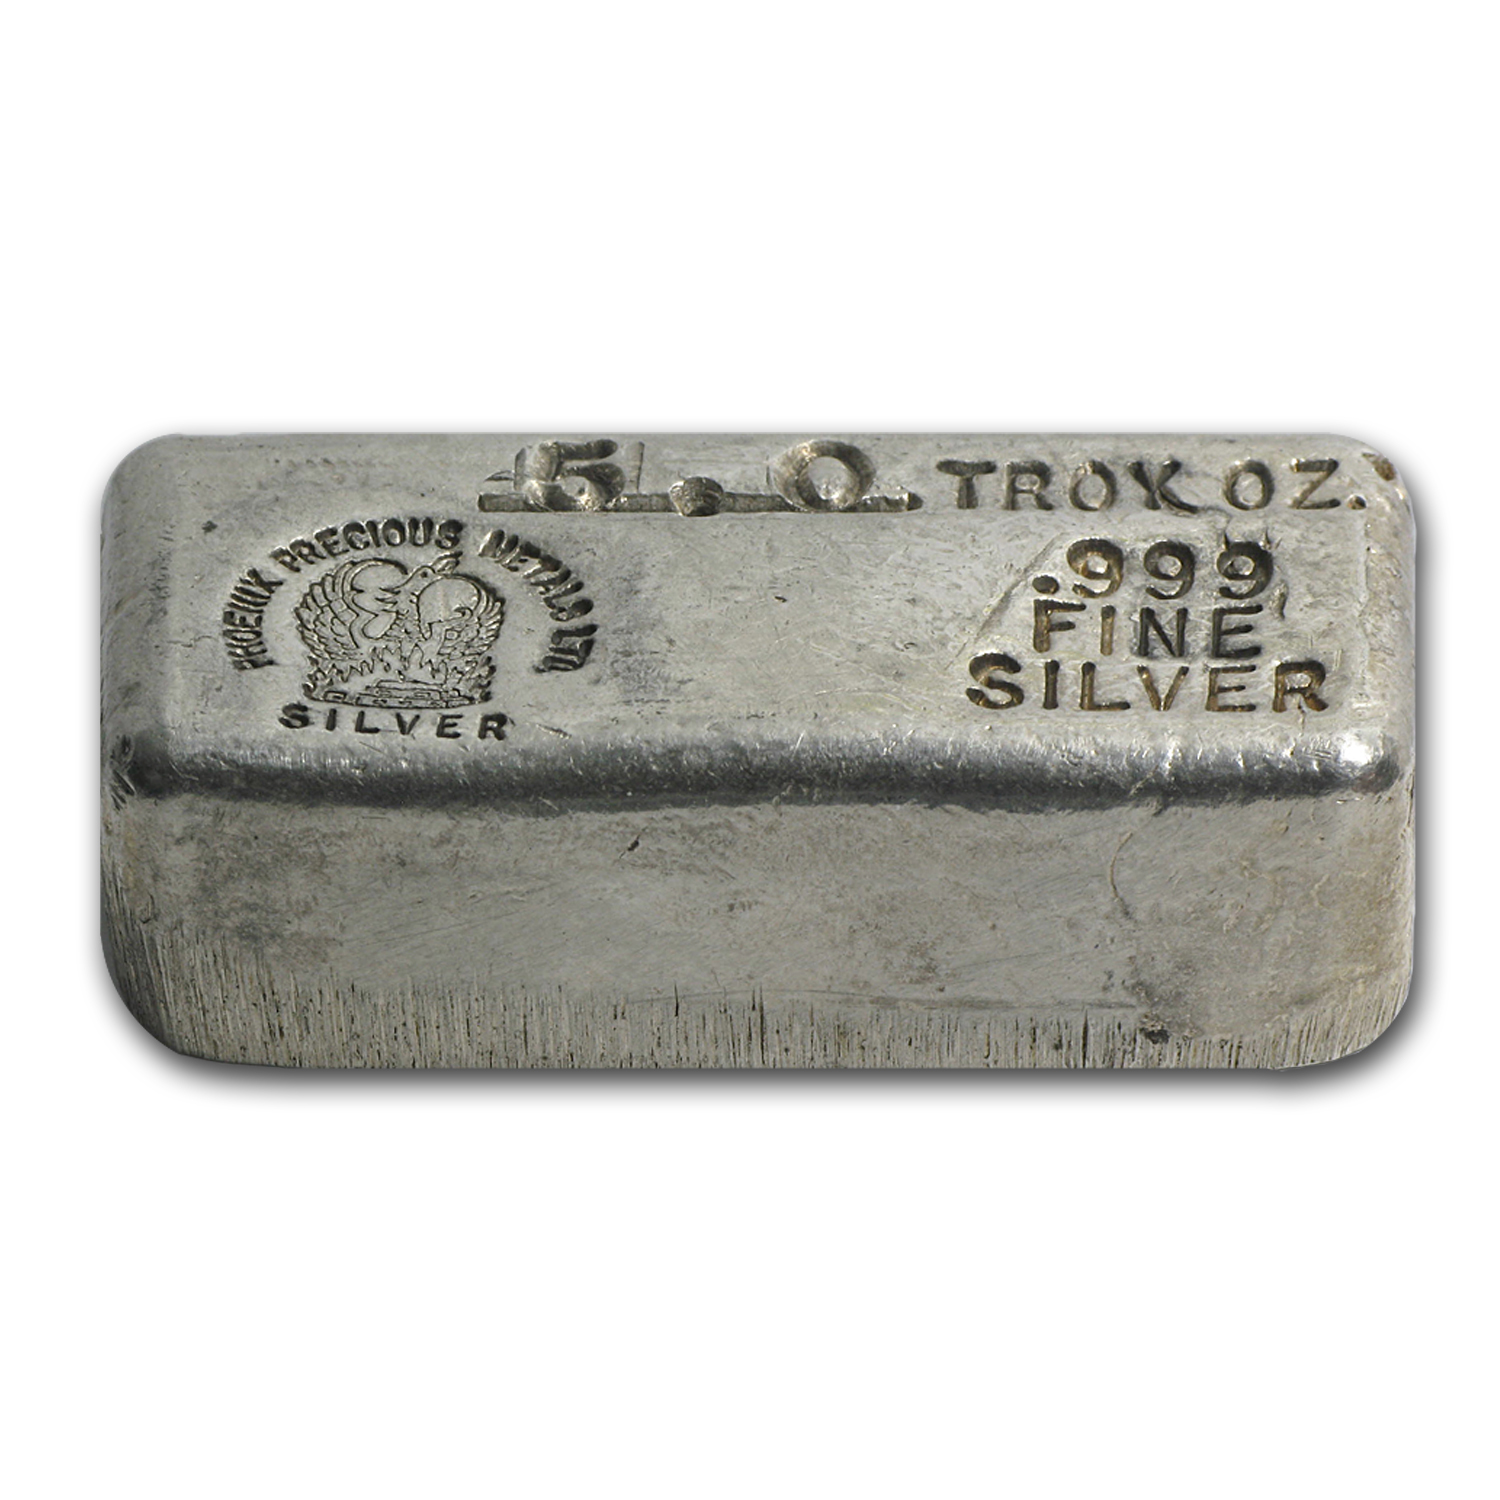 5 oz Silver Bar - Phoenix Precious Metals Ltd.